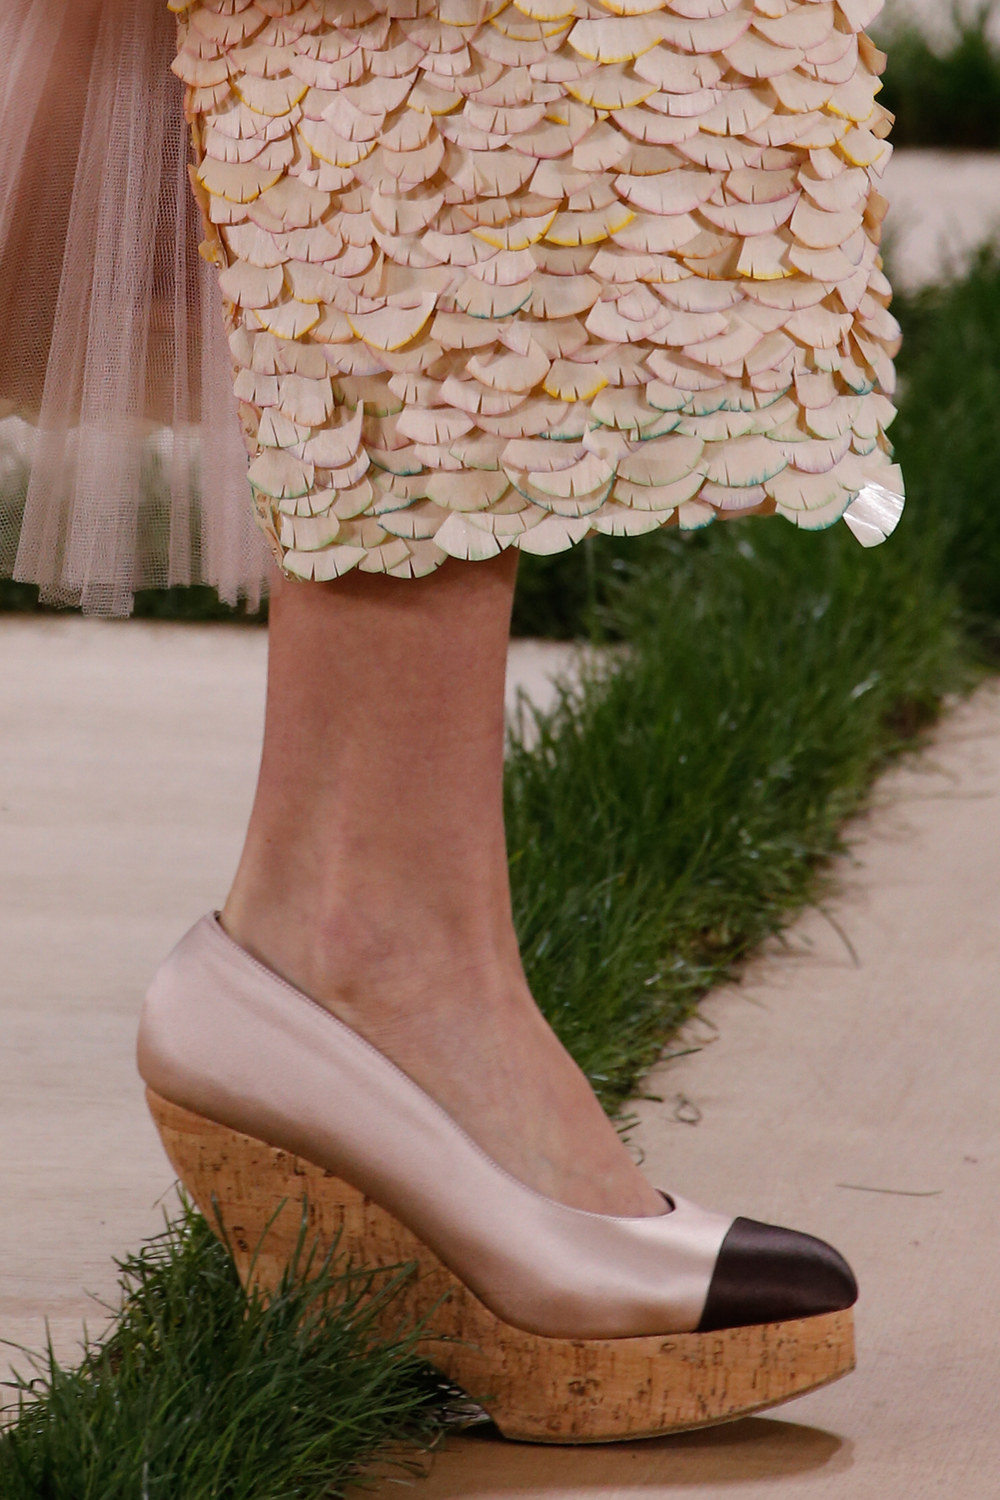 Detail of my dress' wood chip hemline at the Chanel Couture spring '16 show in Paris. Image courtesy of Vogue.com